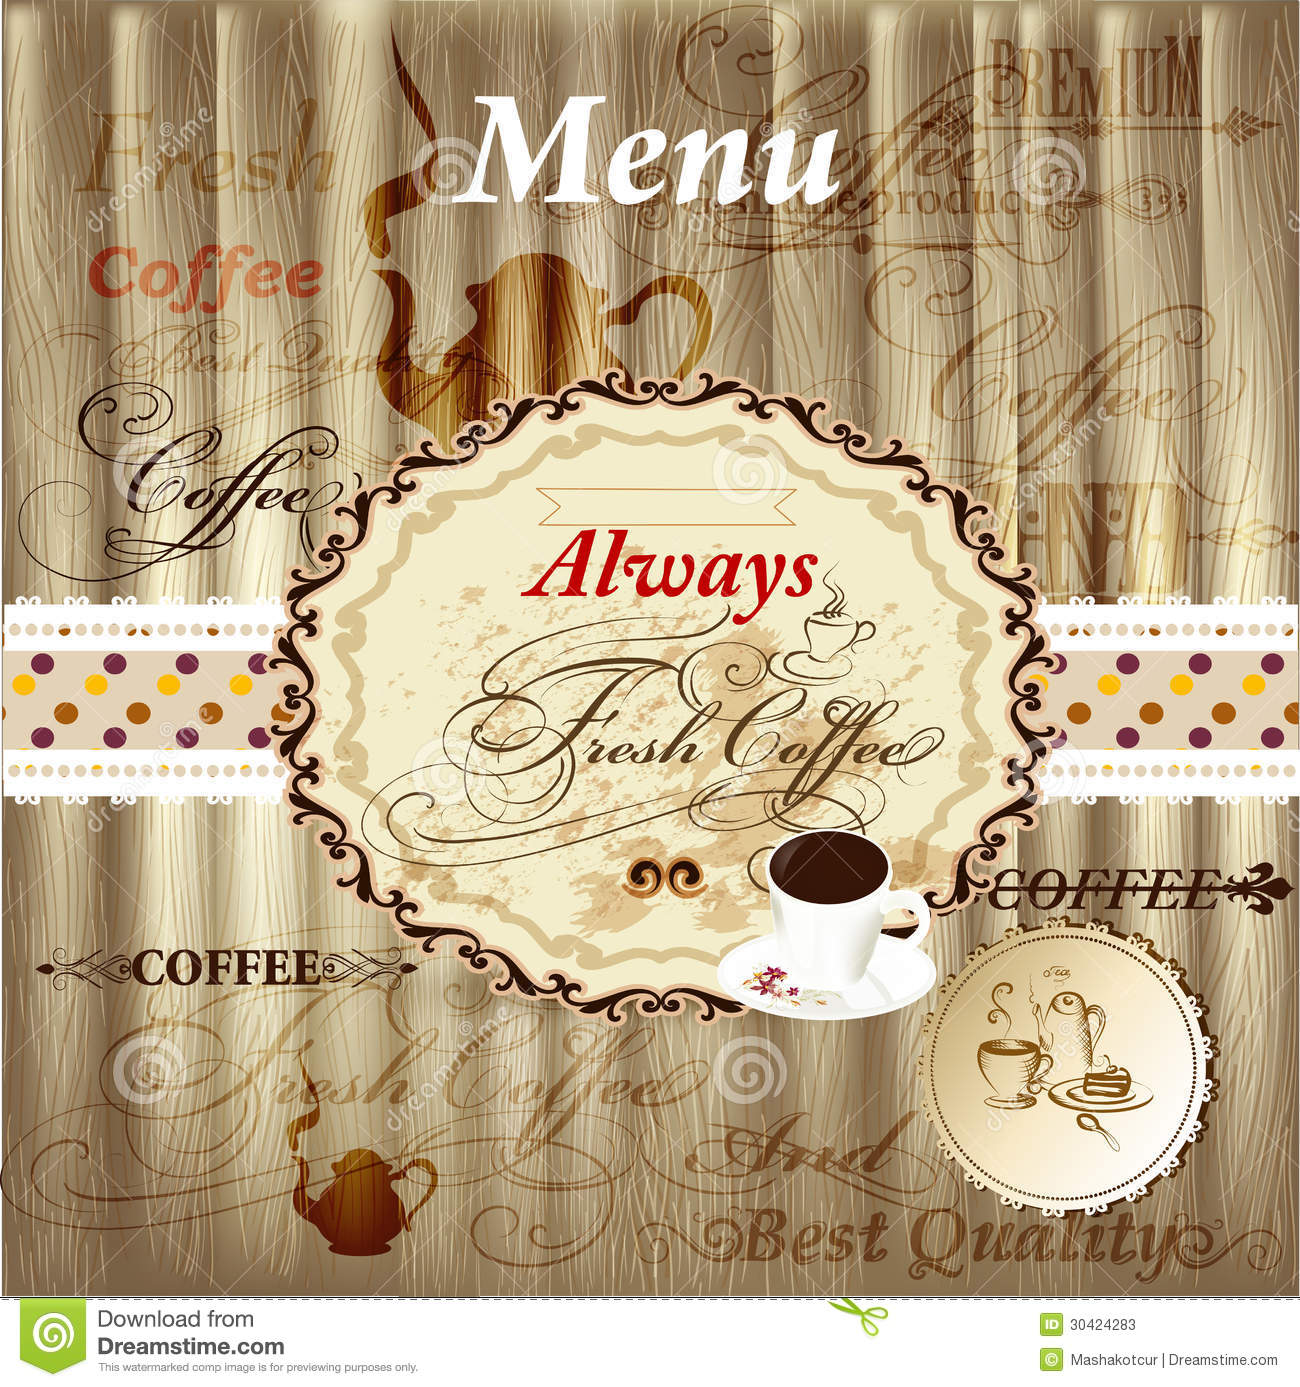 Elegant Menu Design With Coffee Elements On Wood Texture